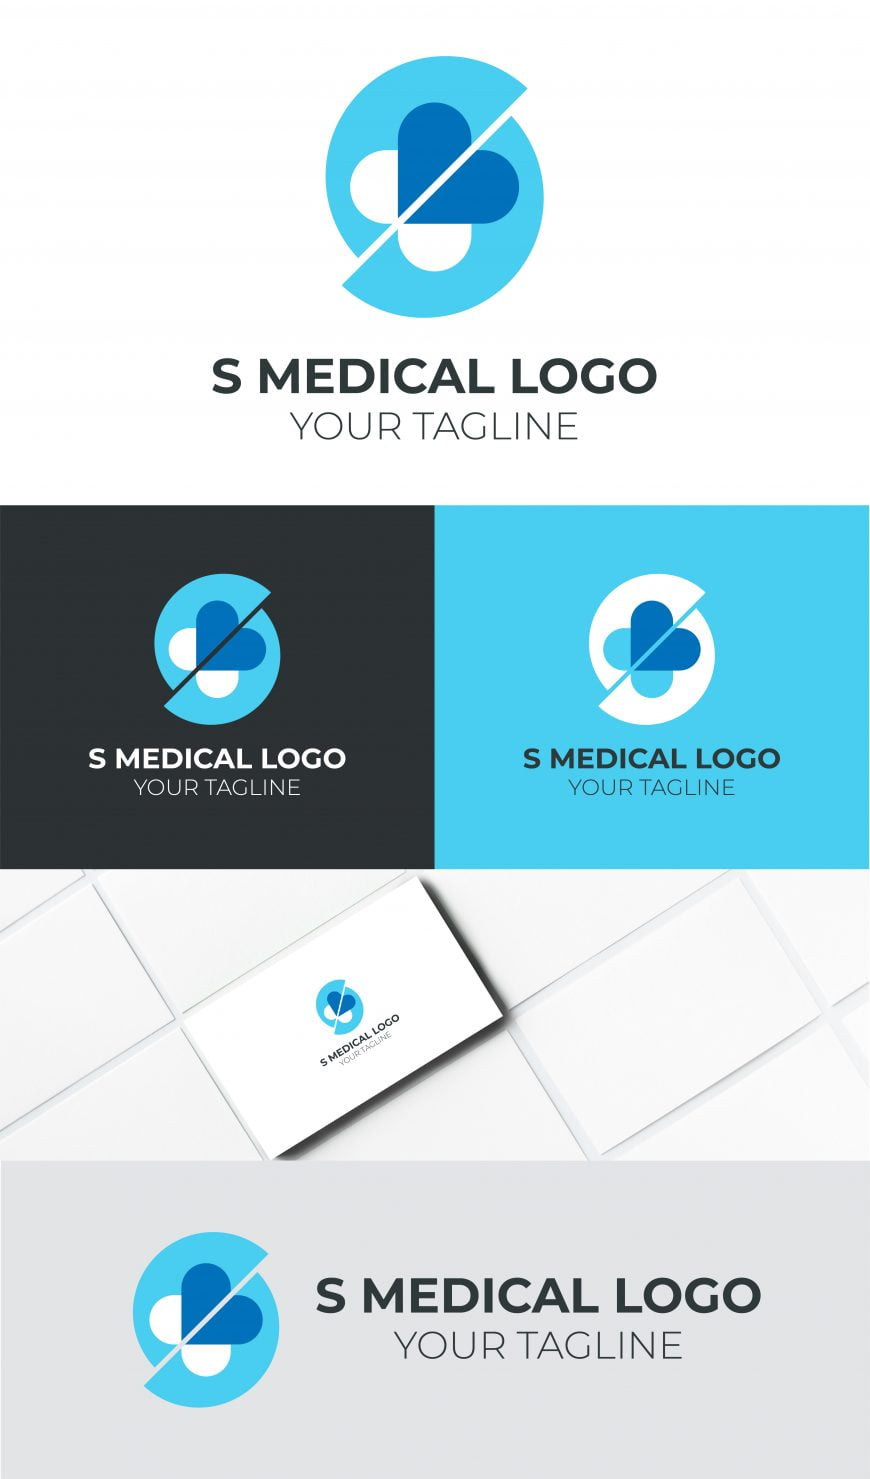 MEDICAL-LOGO-TEMPLATE-scaled